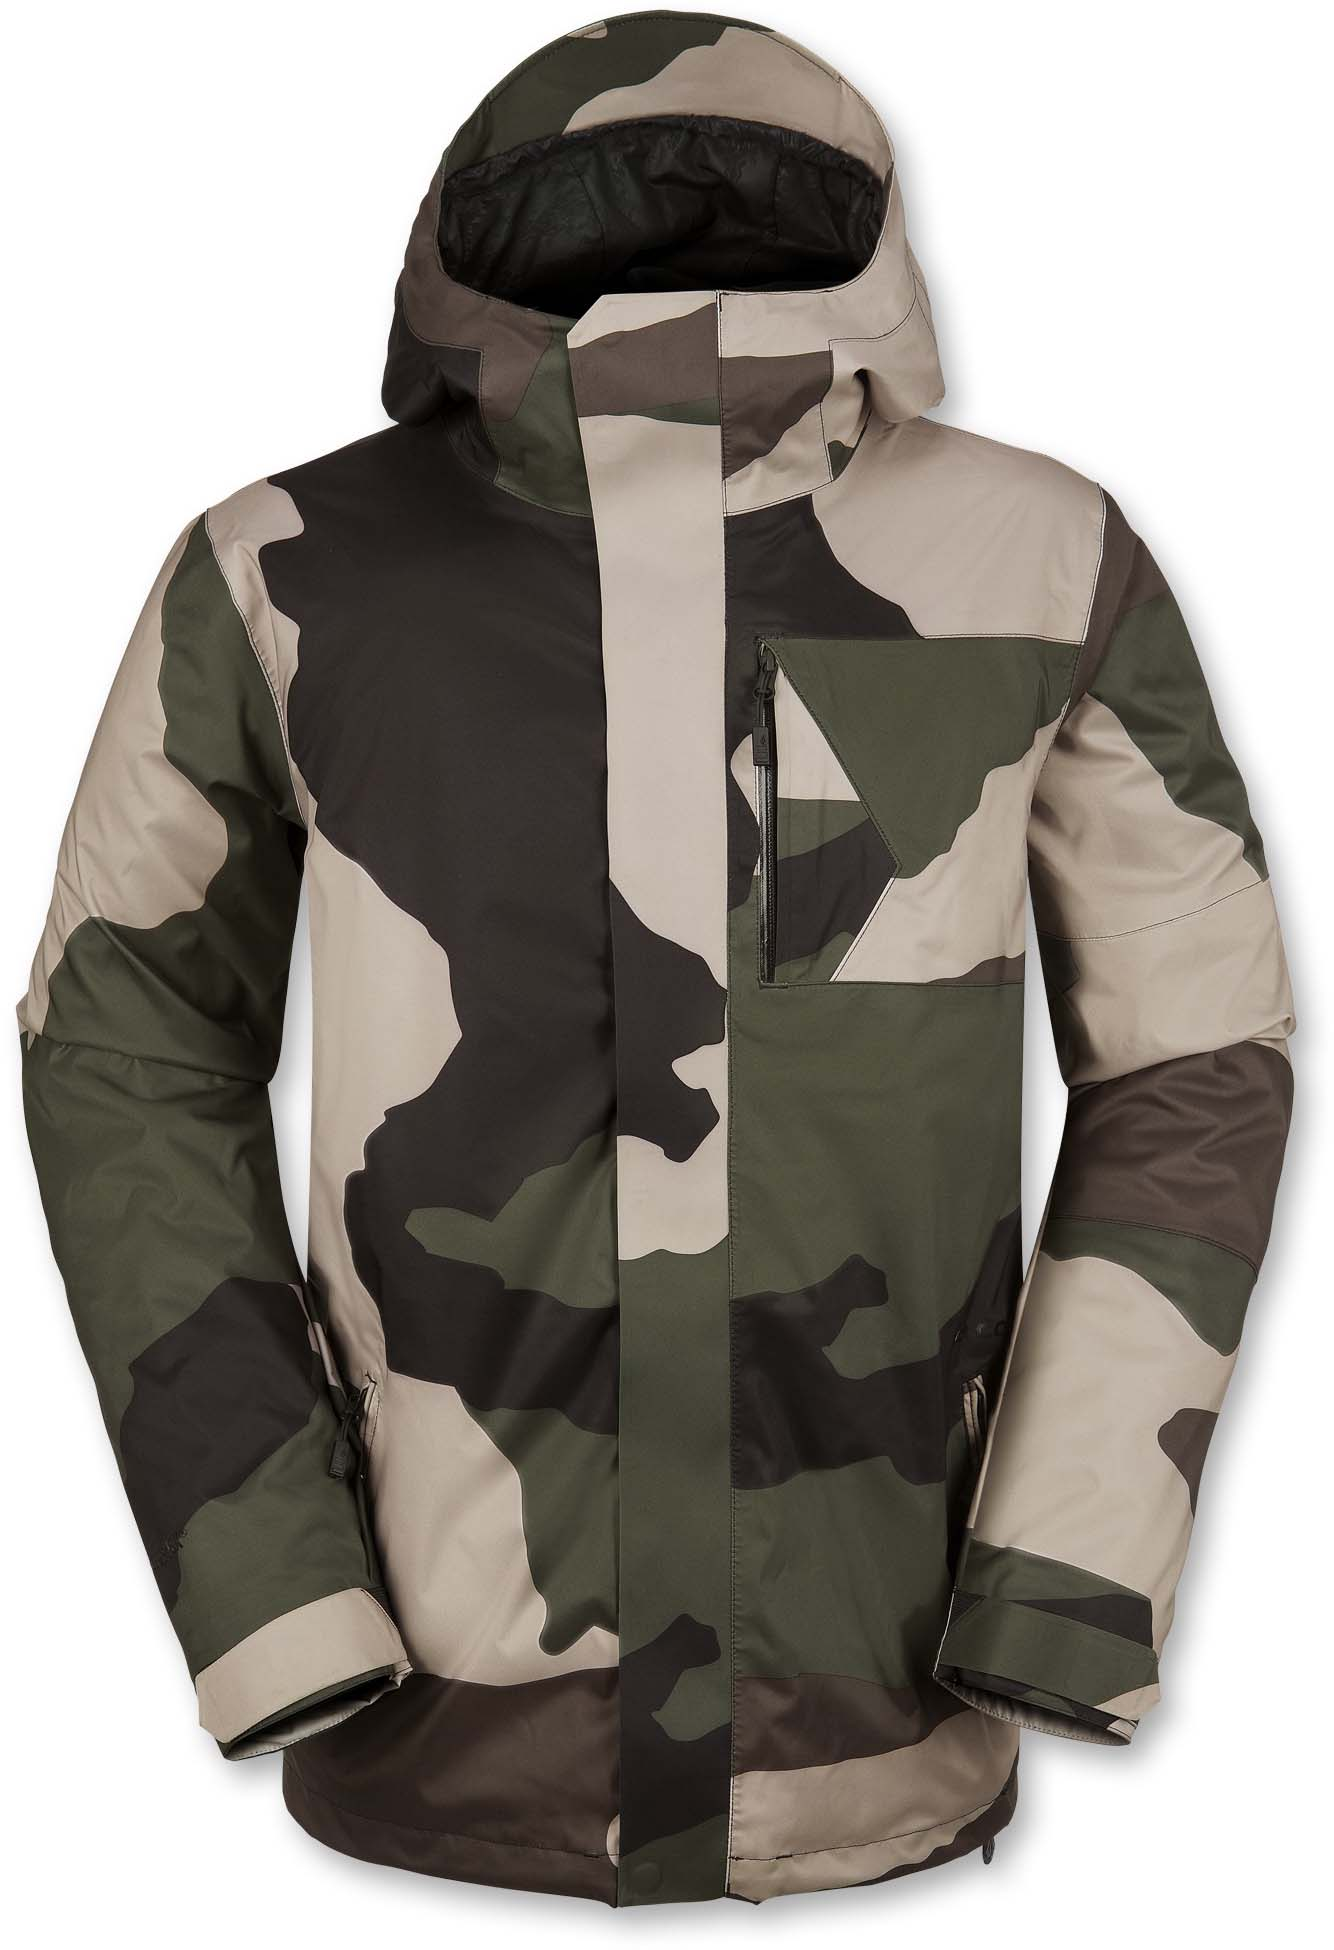 volcom l gore tex jacket review ratings buyers advice. Black Bedroom Furniture Sets. Home Design Ideas